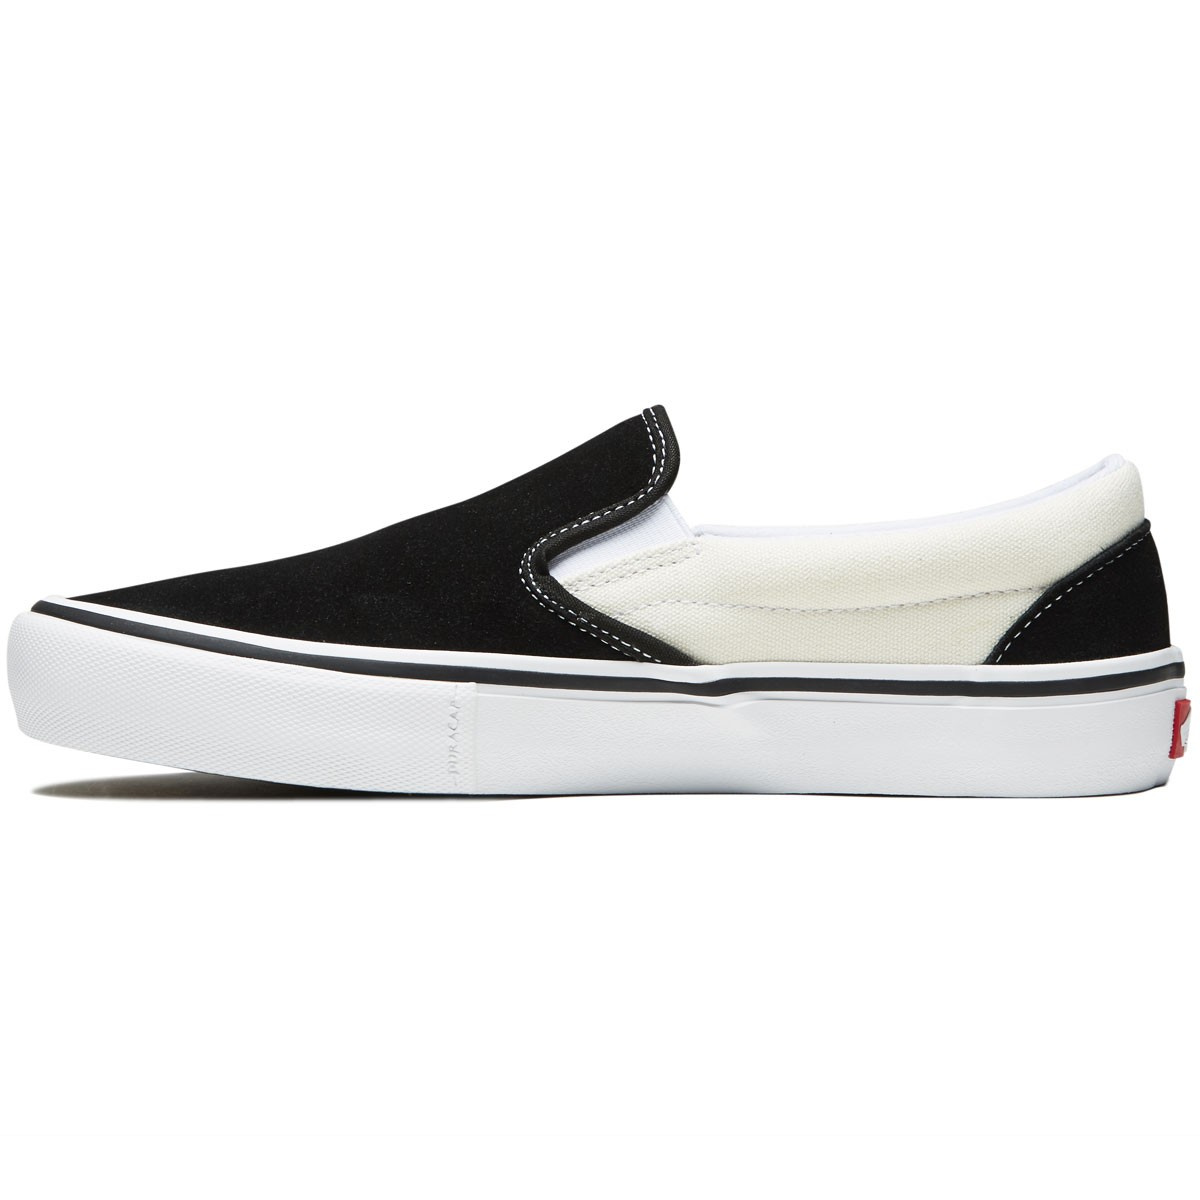 f4f2ed68c535 Vans Slip-On Pro Shoes